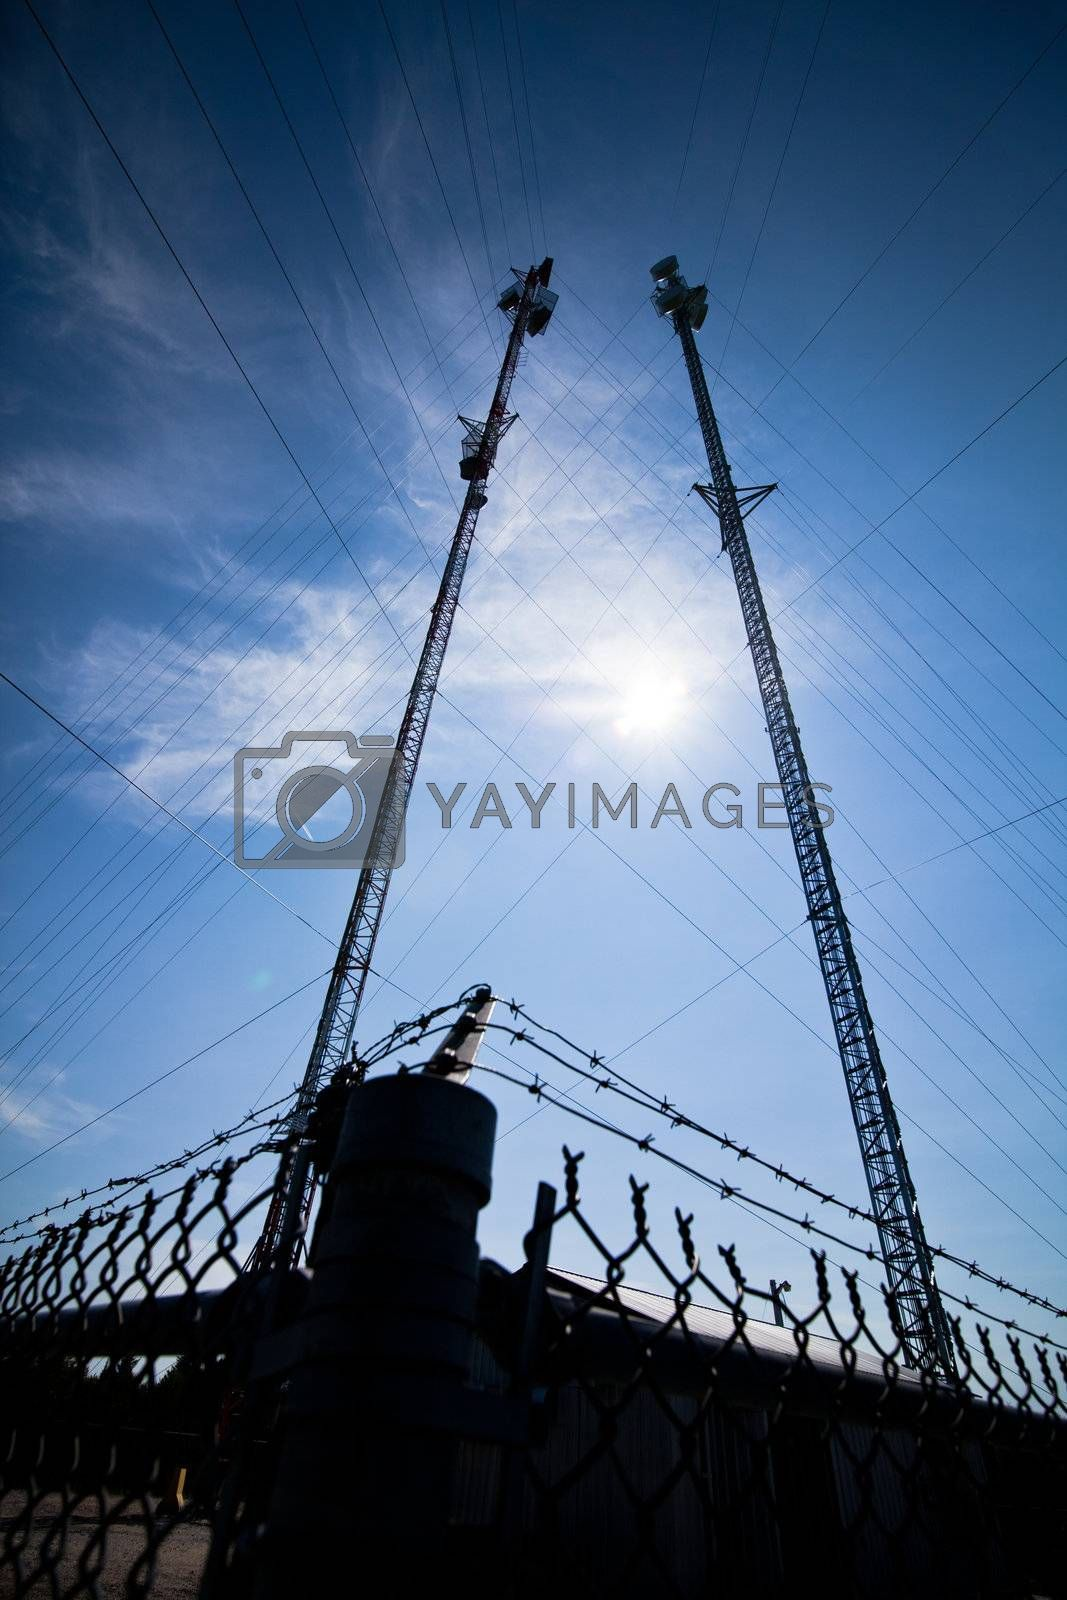 Pole with electrical wires and communication tower surounded by a fence